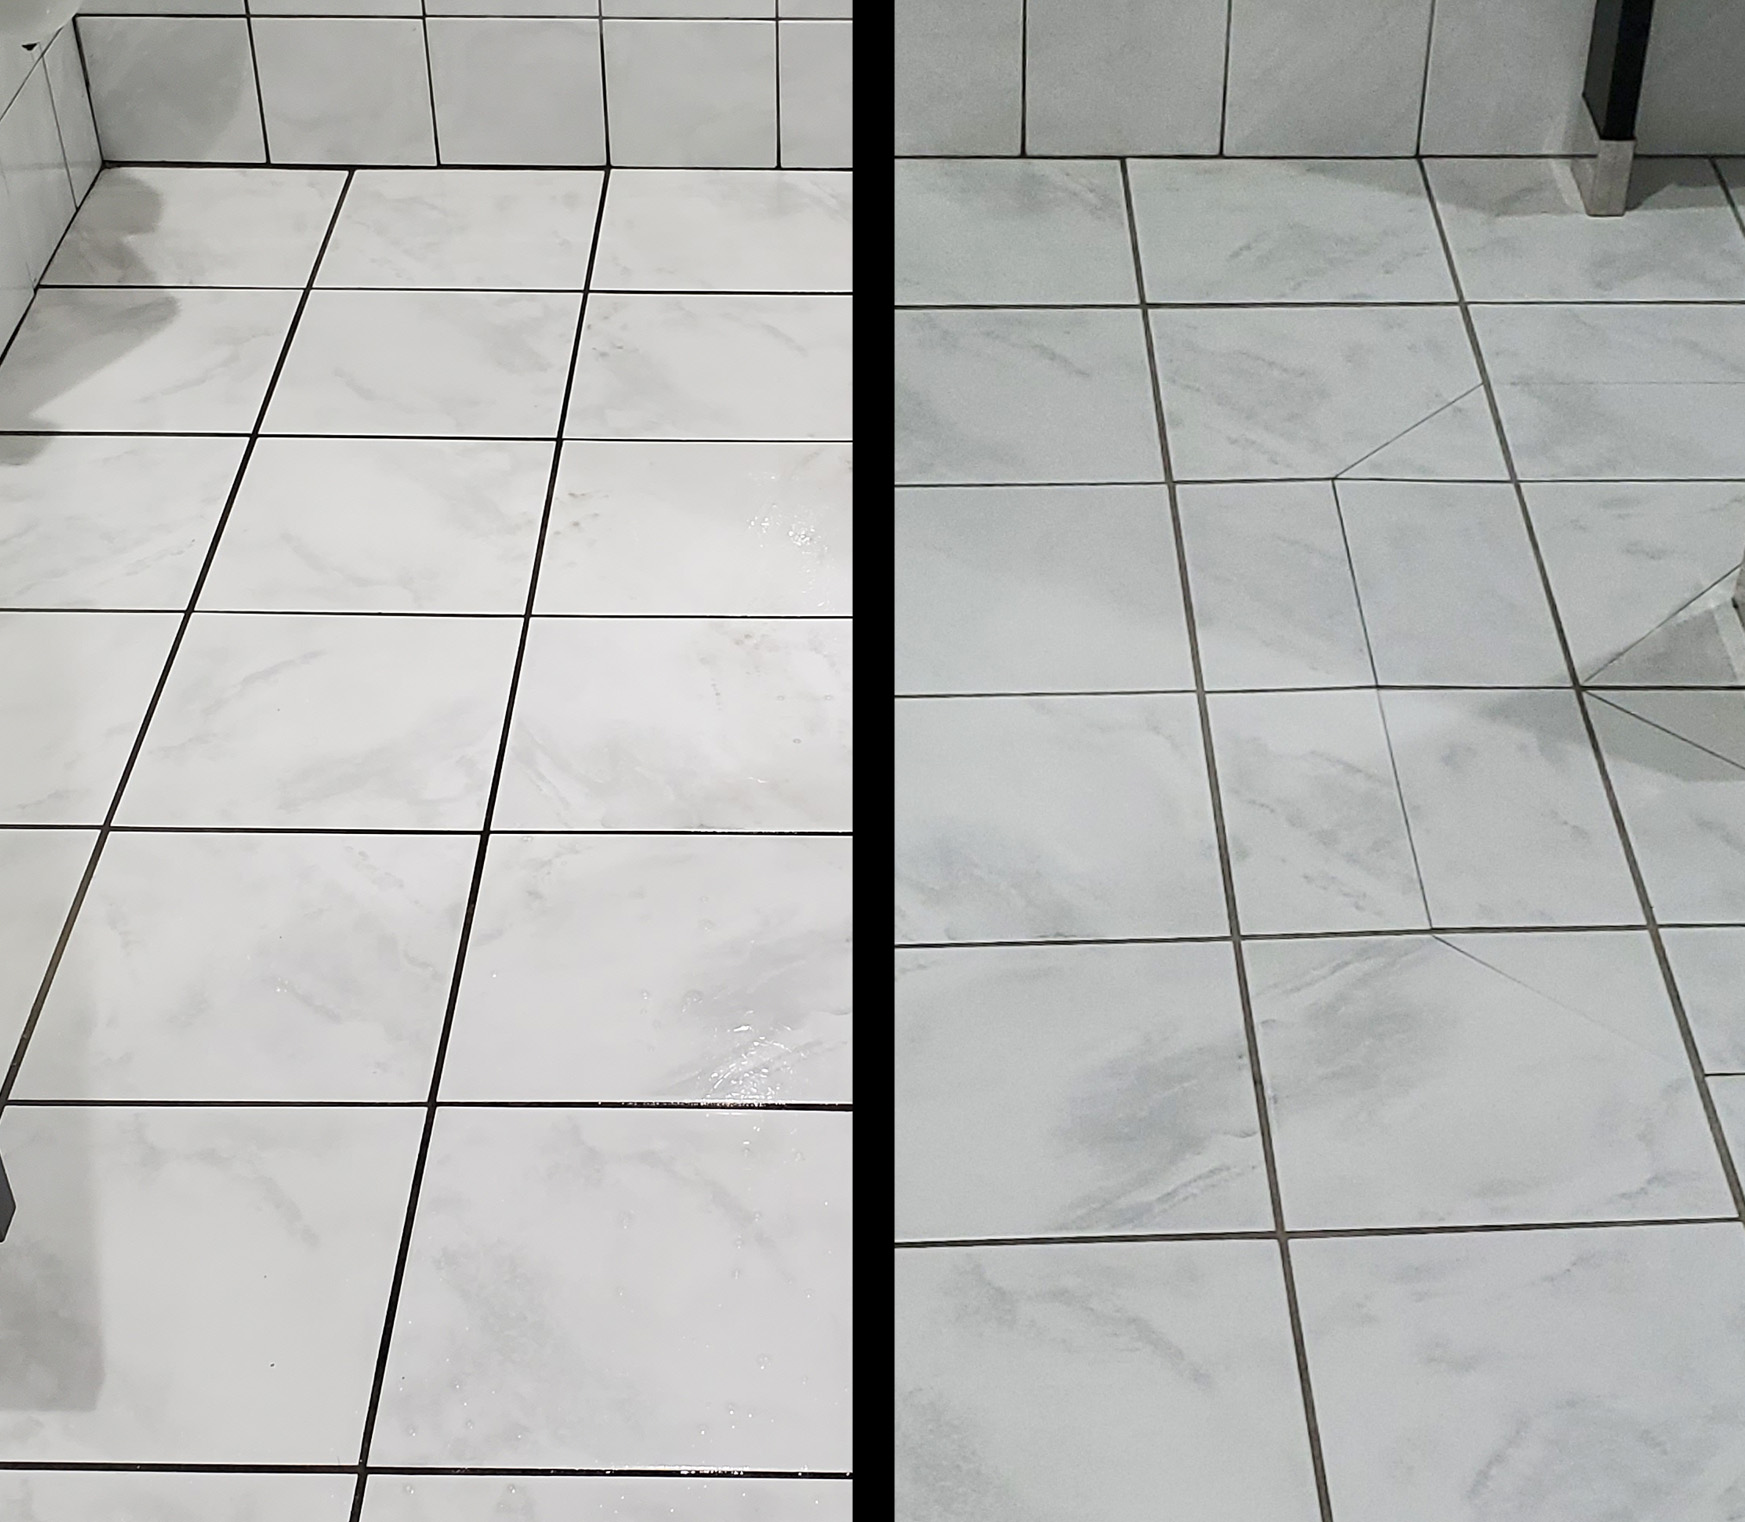 Tile & Grout Job